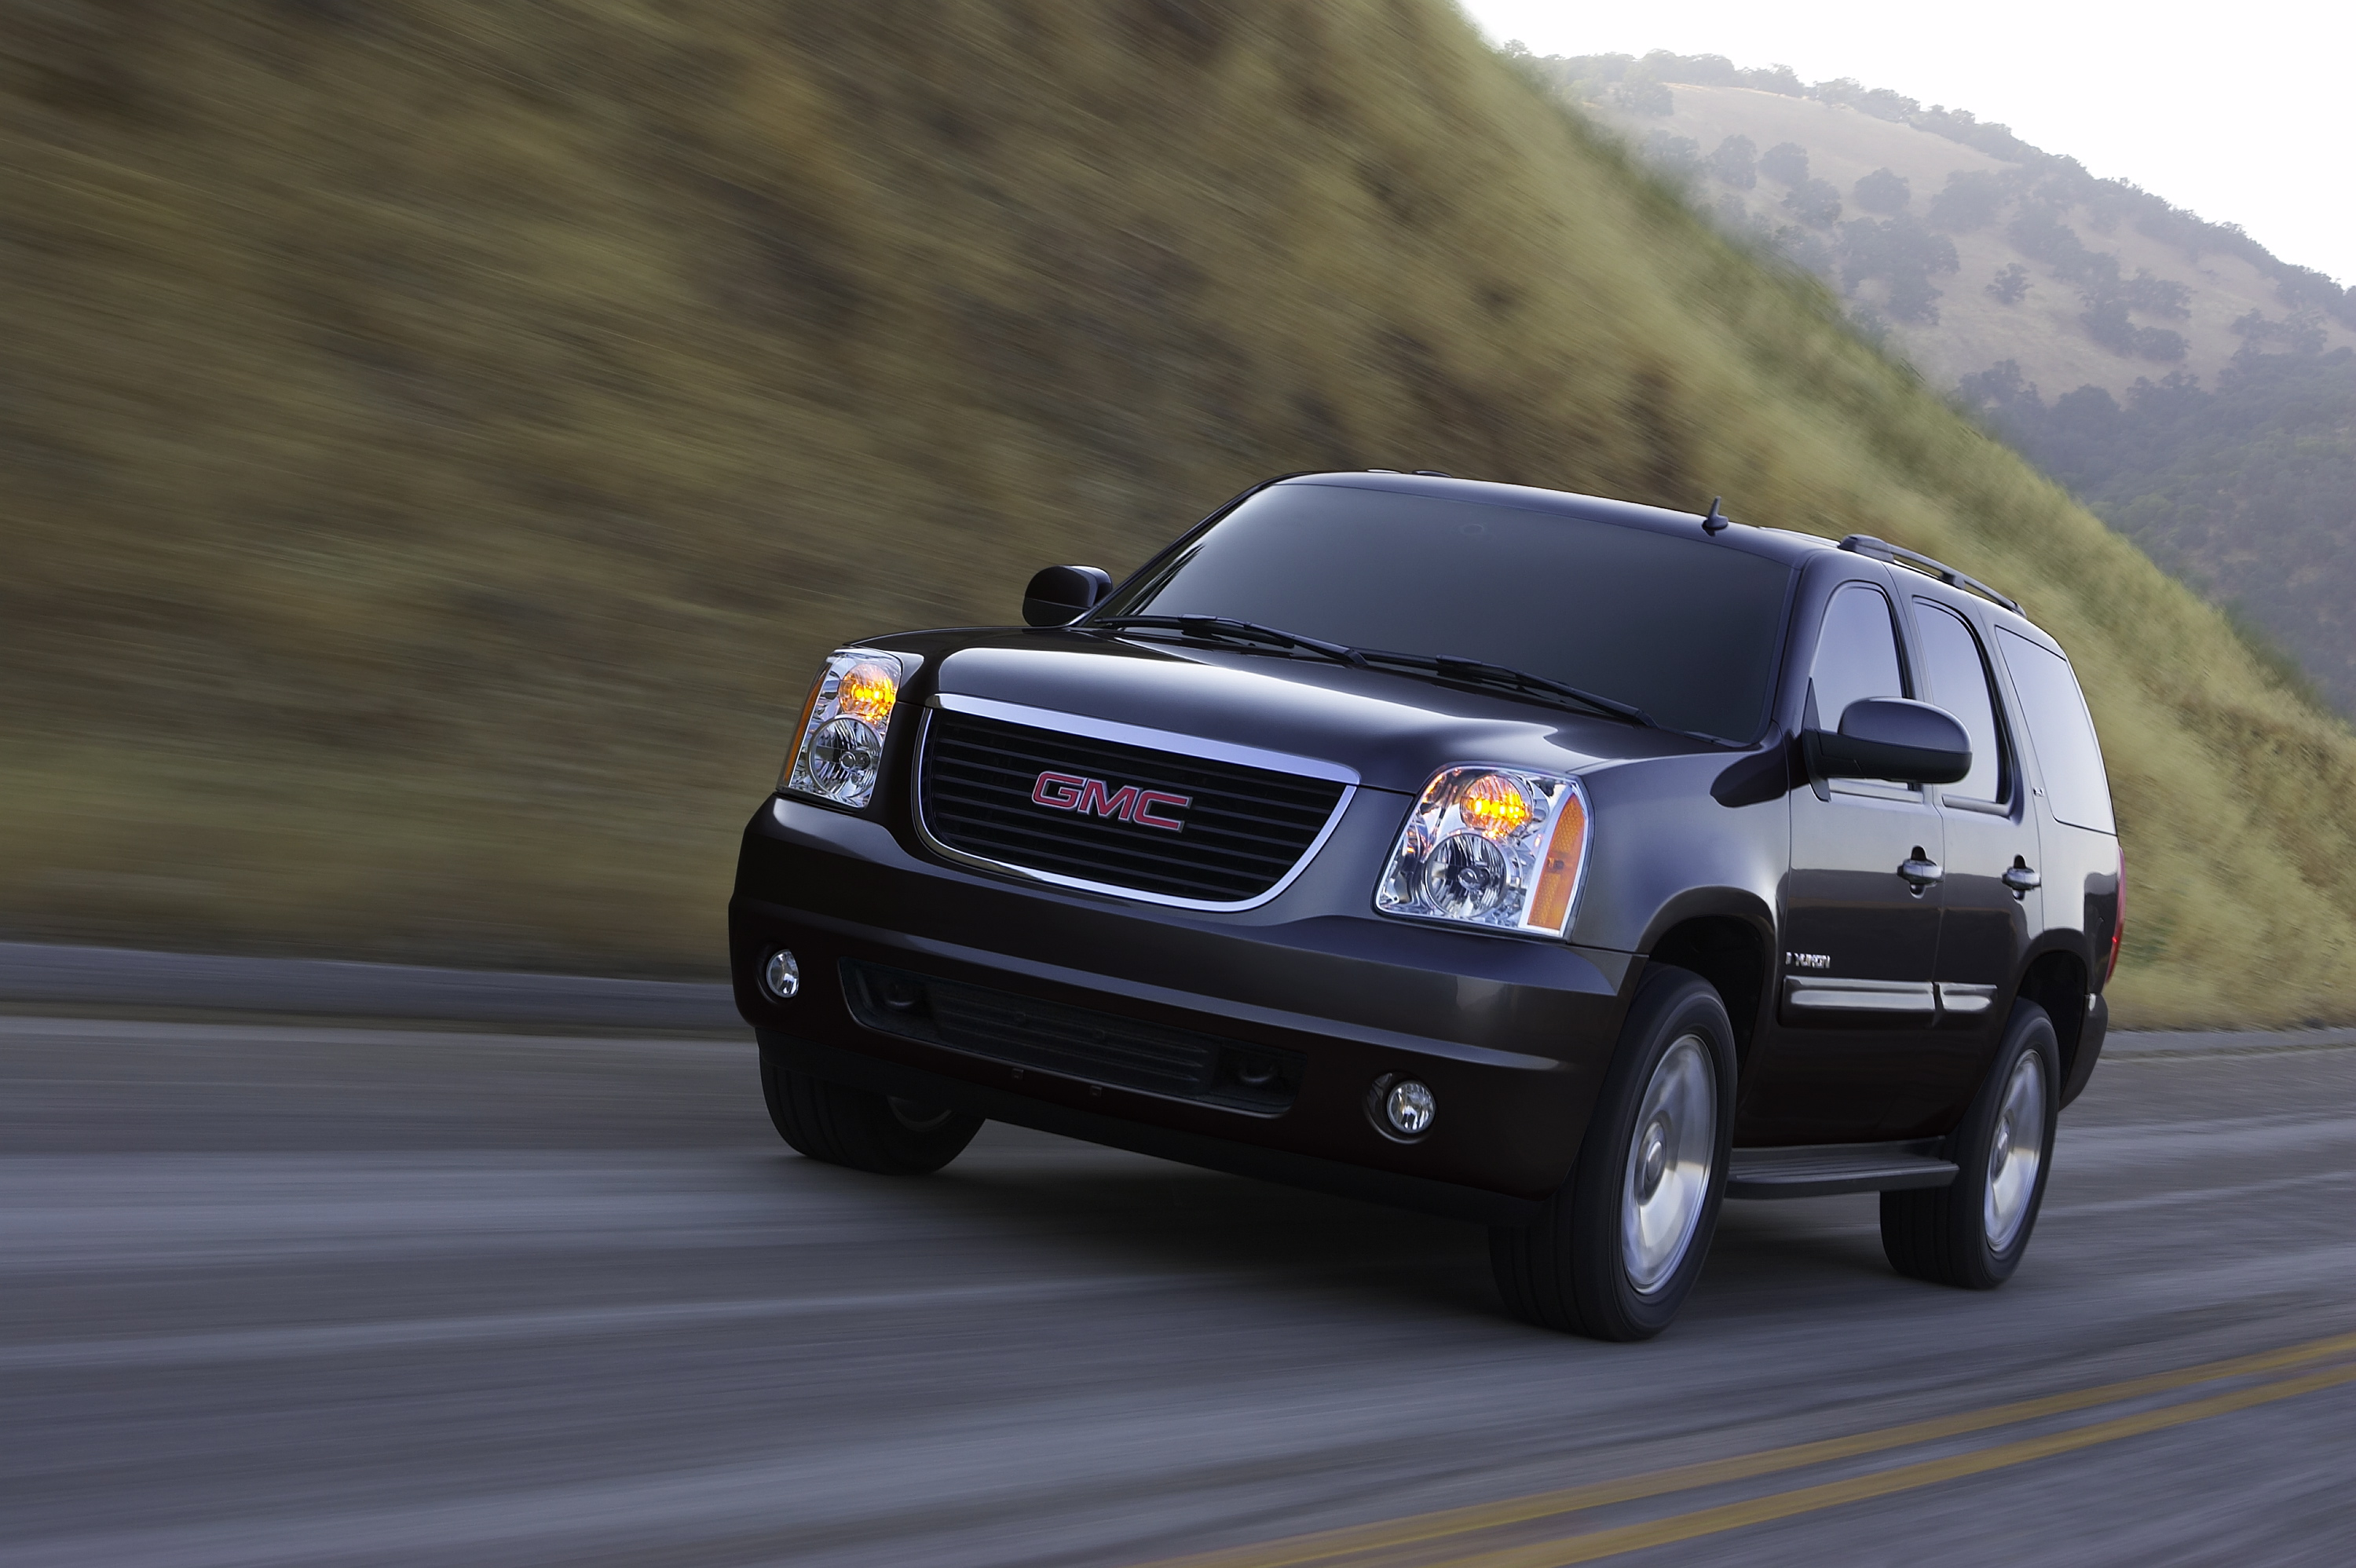 gmc yukon (gmt900) 2009 images